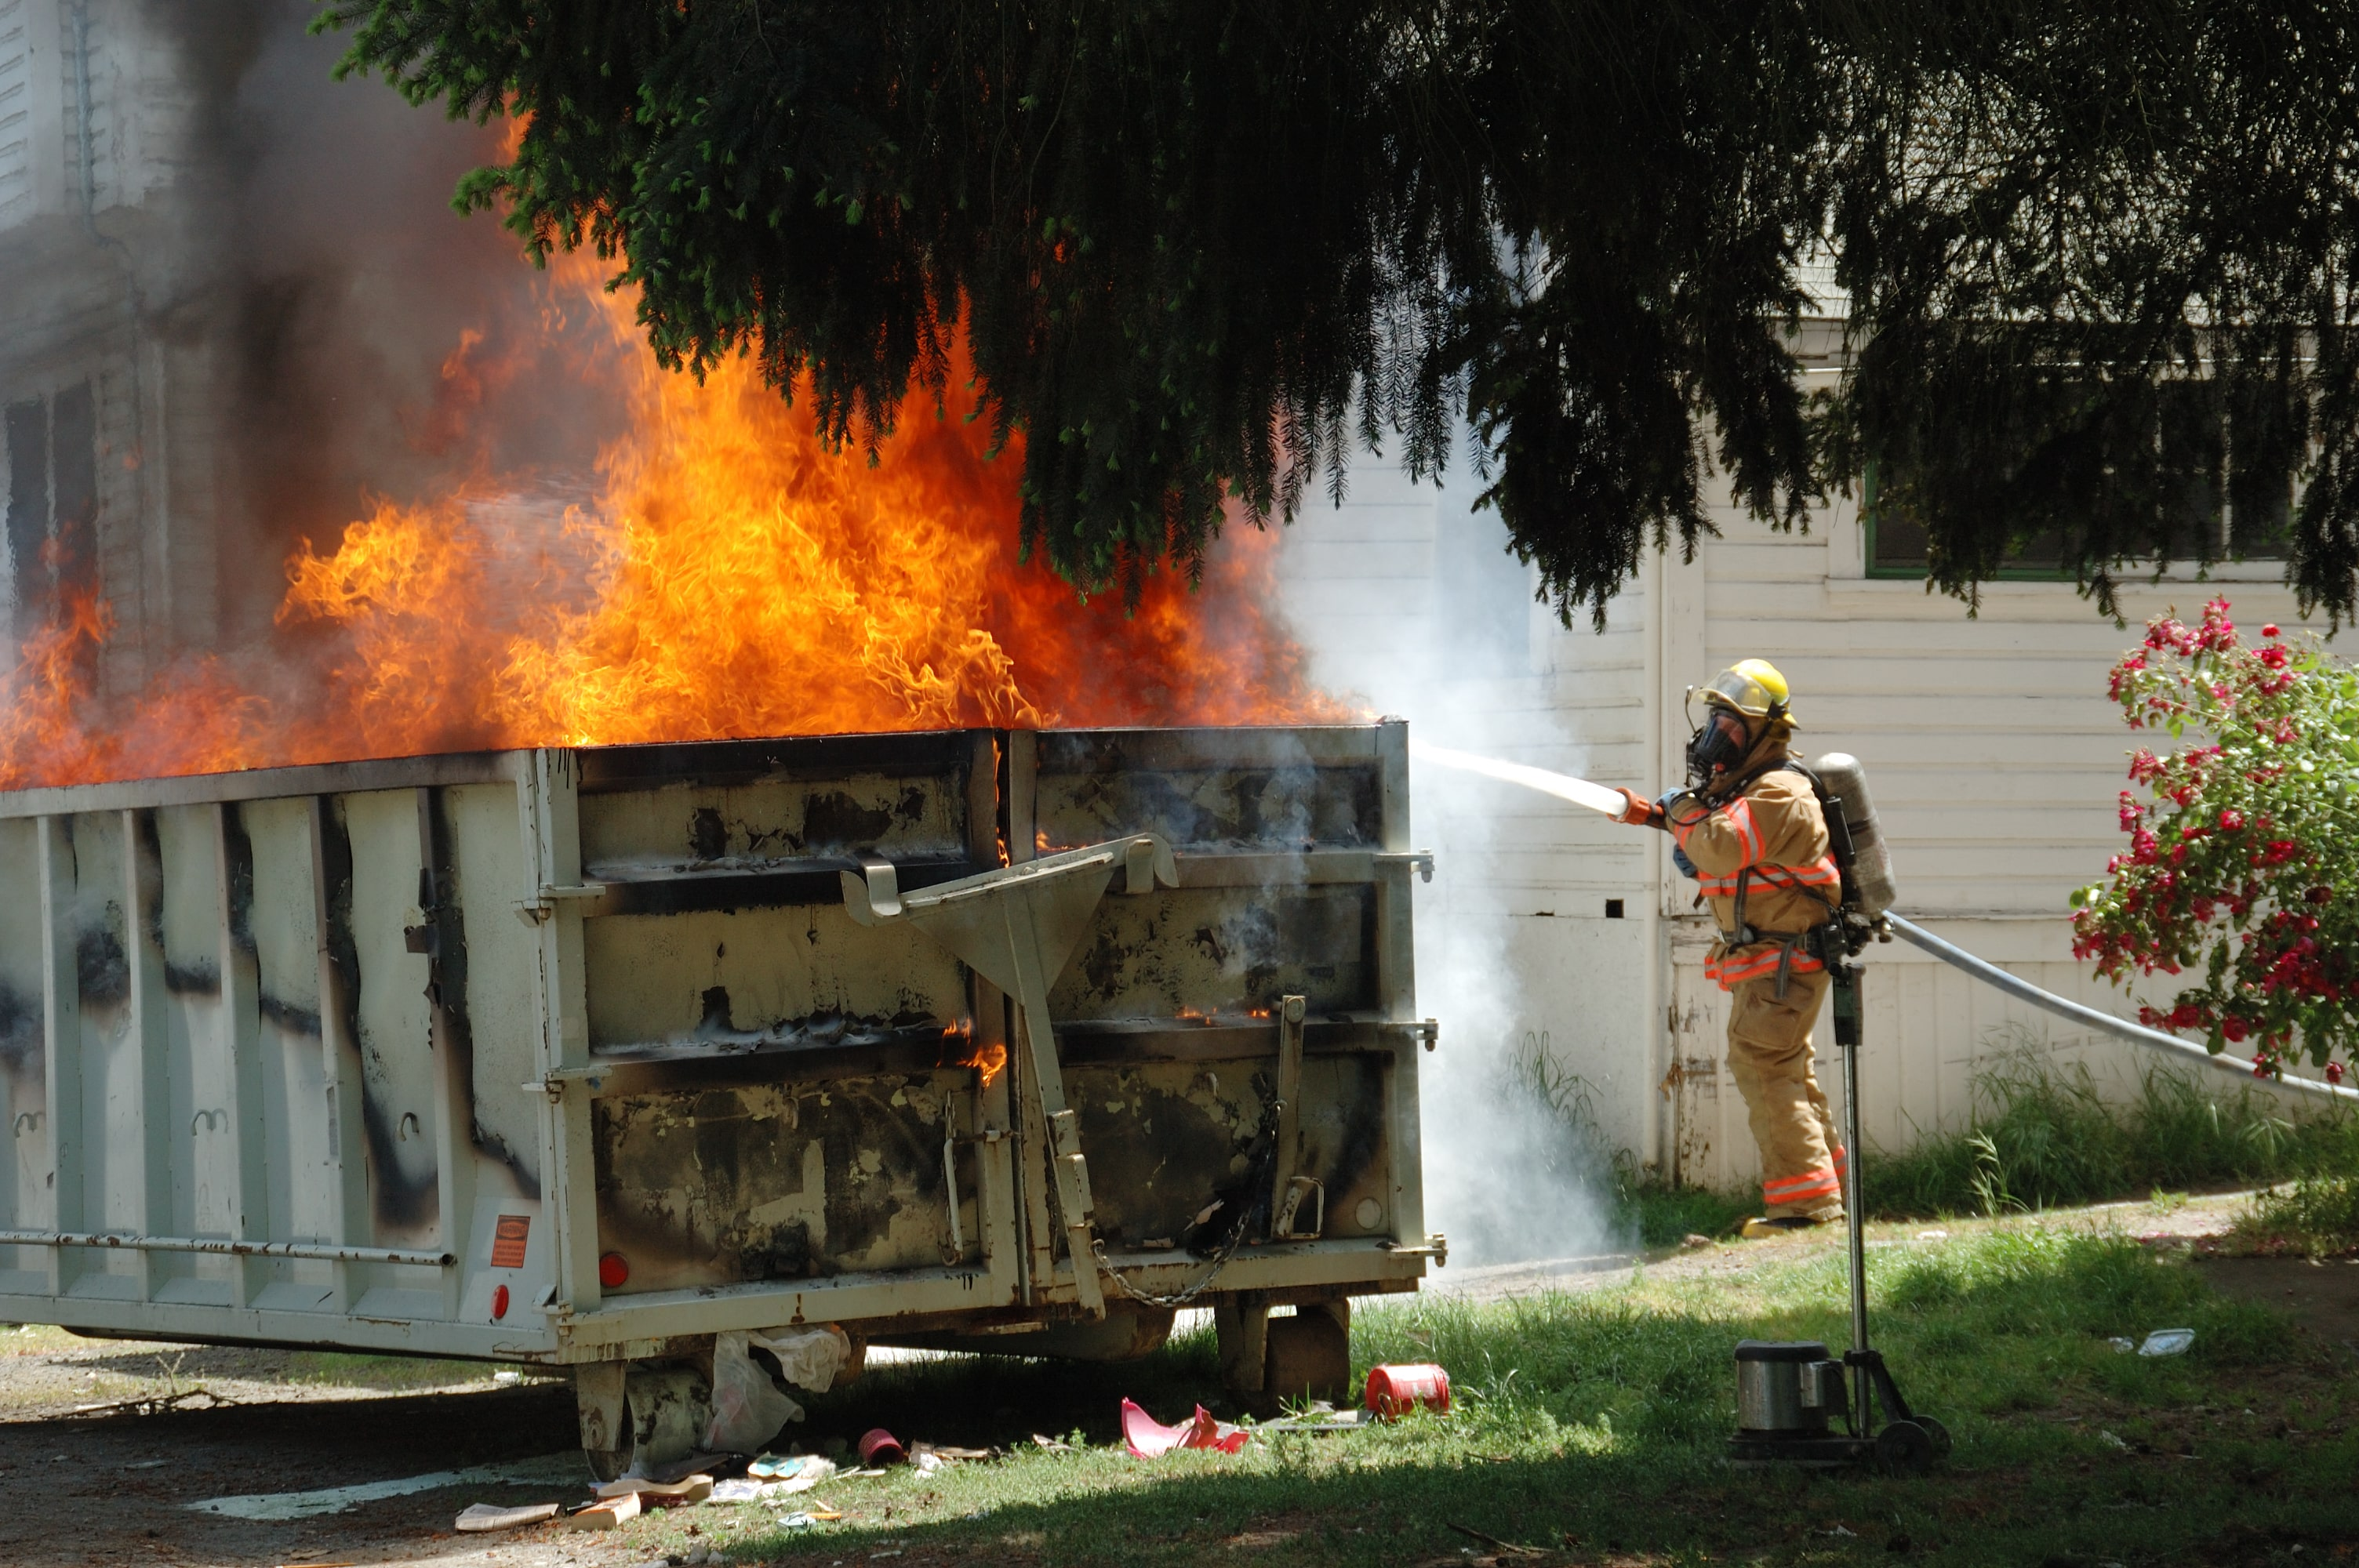 2020 has been a dumpster-fire of a year.It's also given you a master's degree in crisis leadership. Here are the top 10 blog posts of 2020 as determined by you.